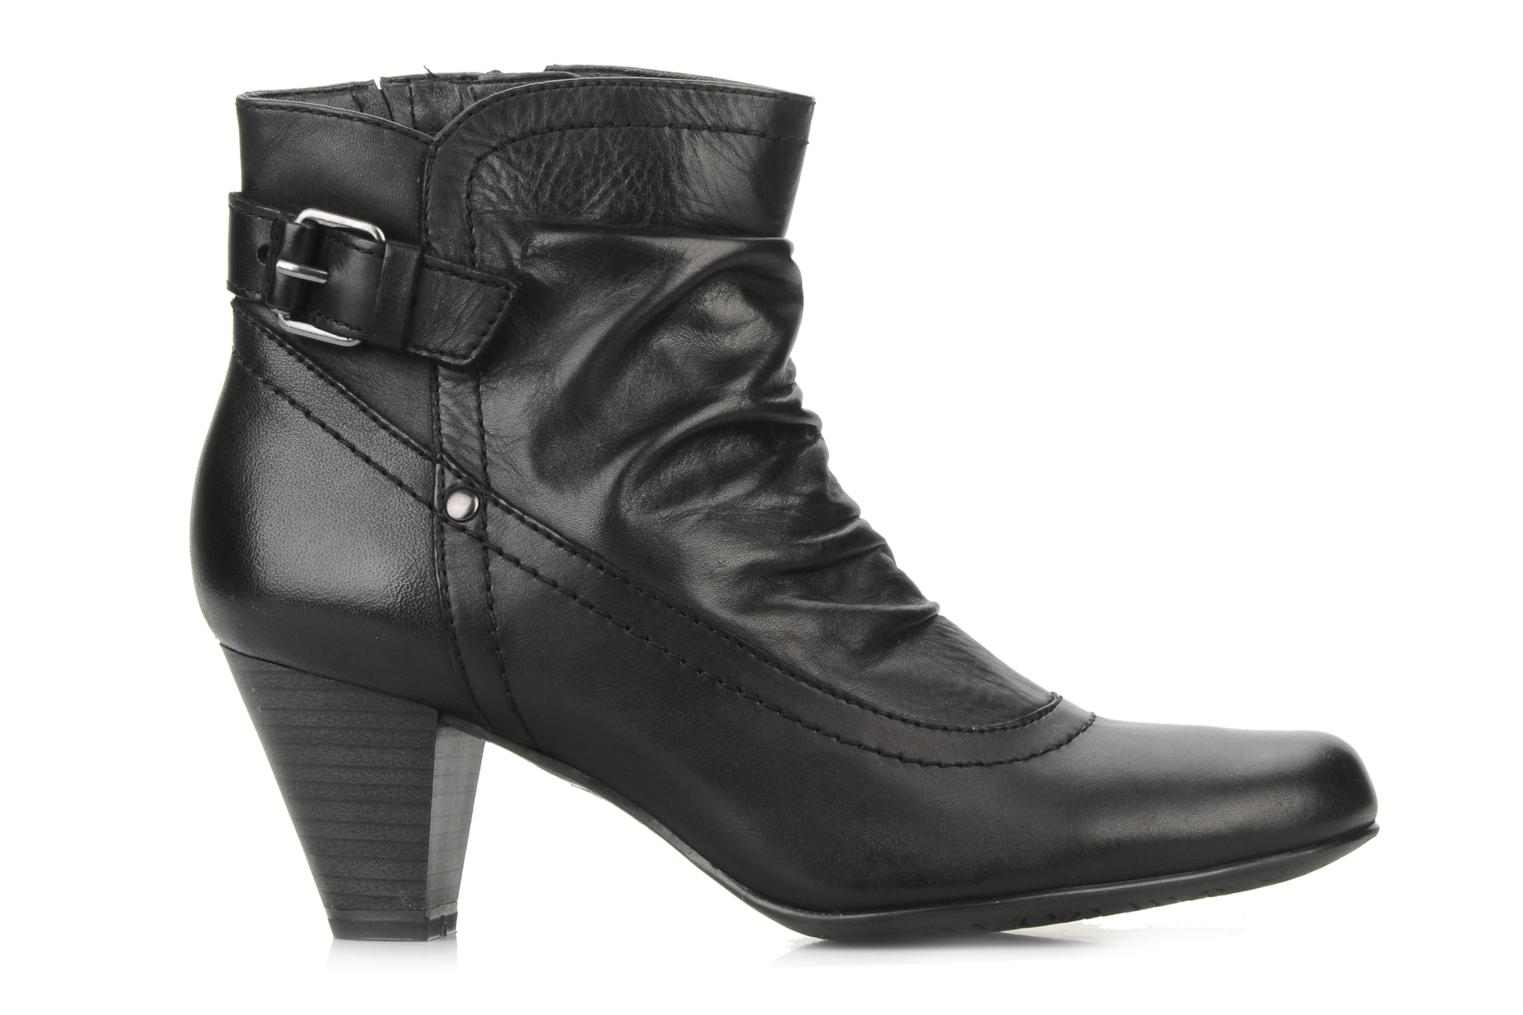 Lizy Black leather